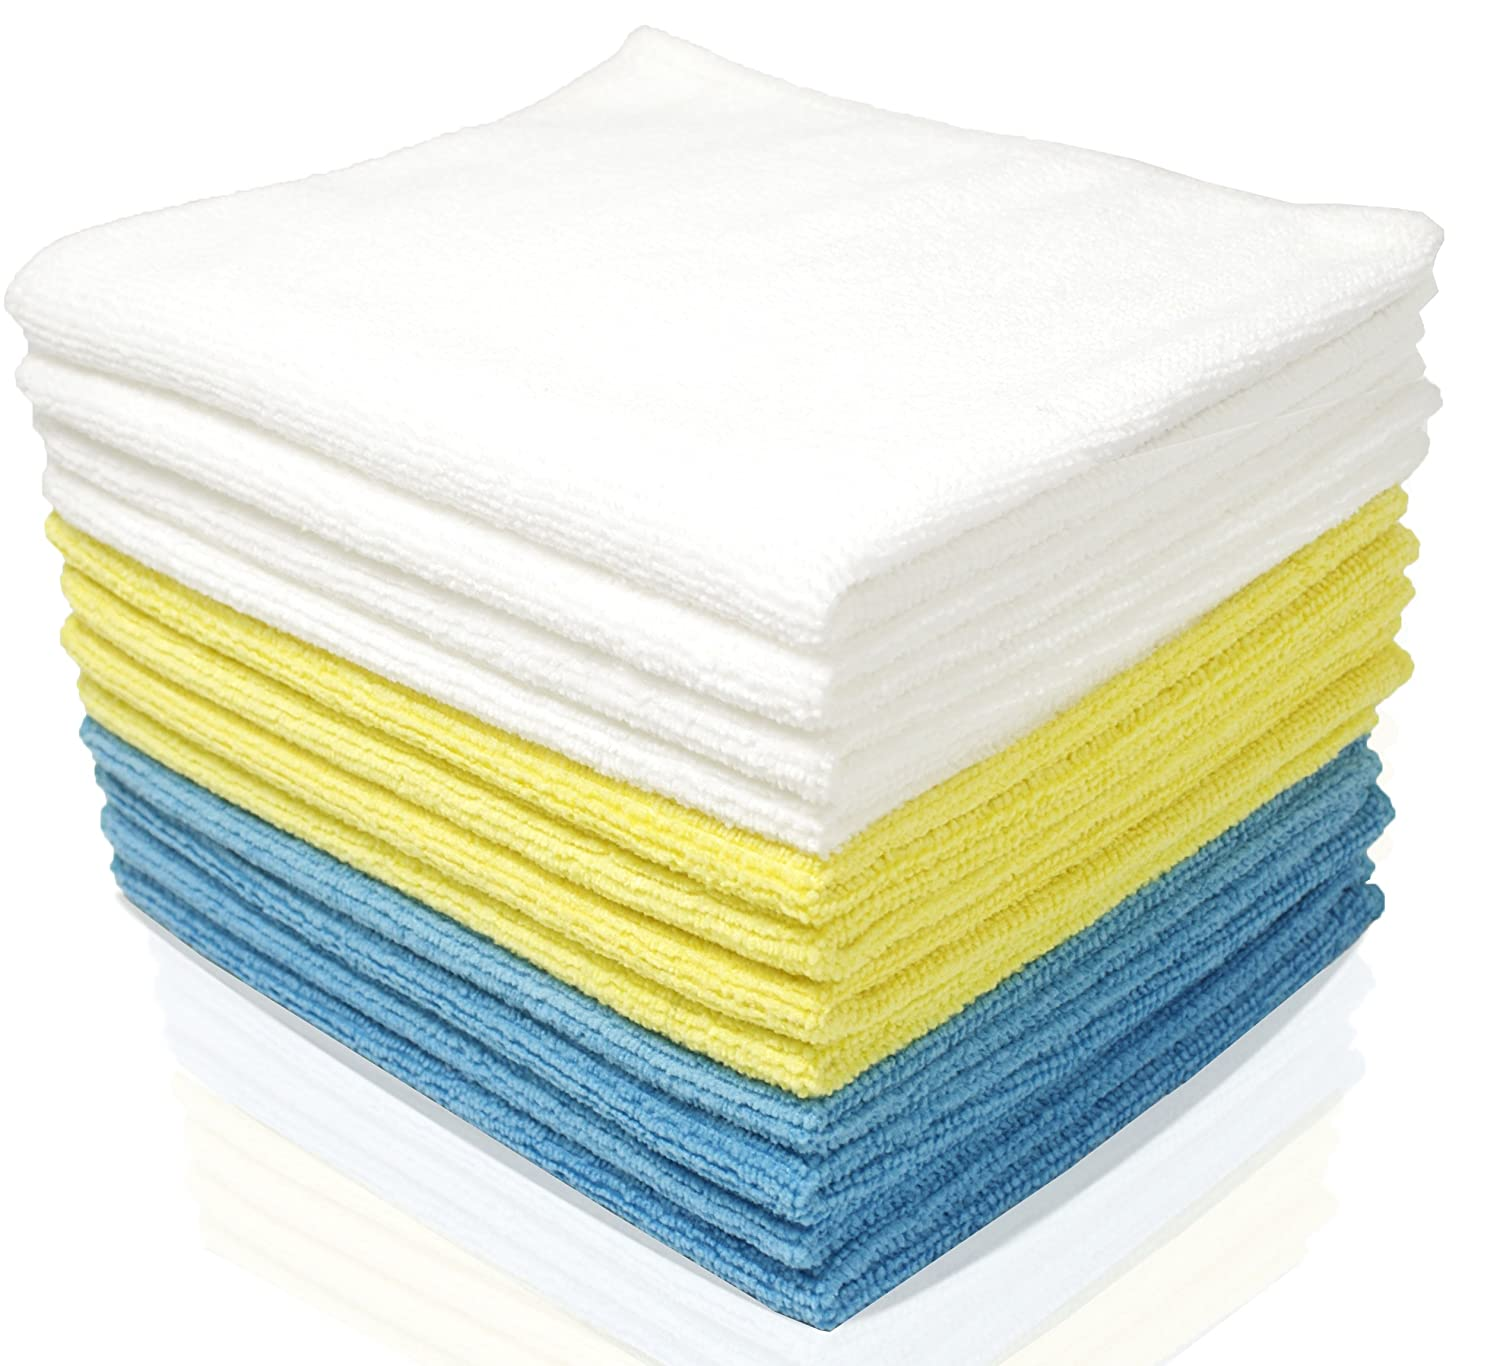 Royal Reusable Microfiber Cleaning Cloth Set - 12 x 16 Inch - 24 Pack